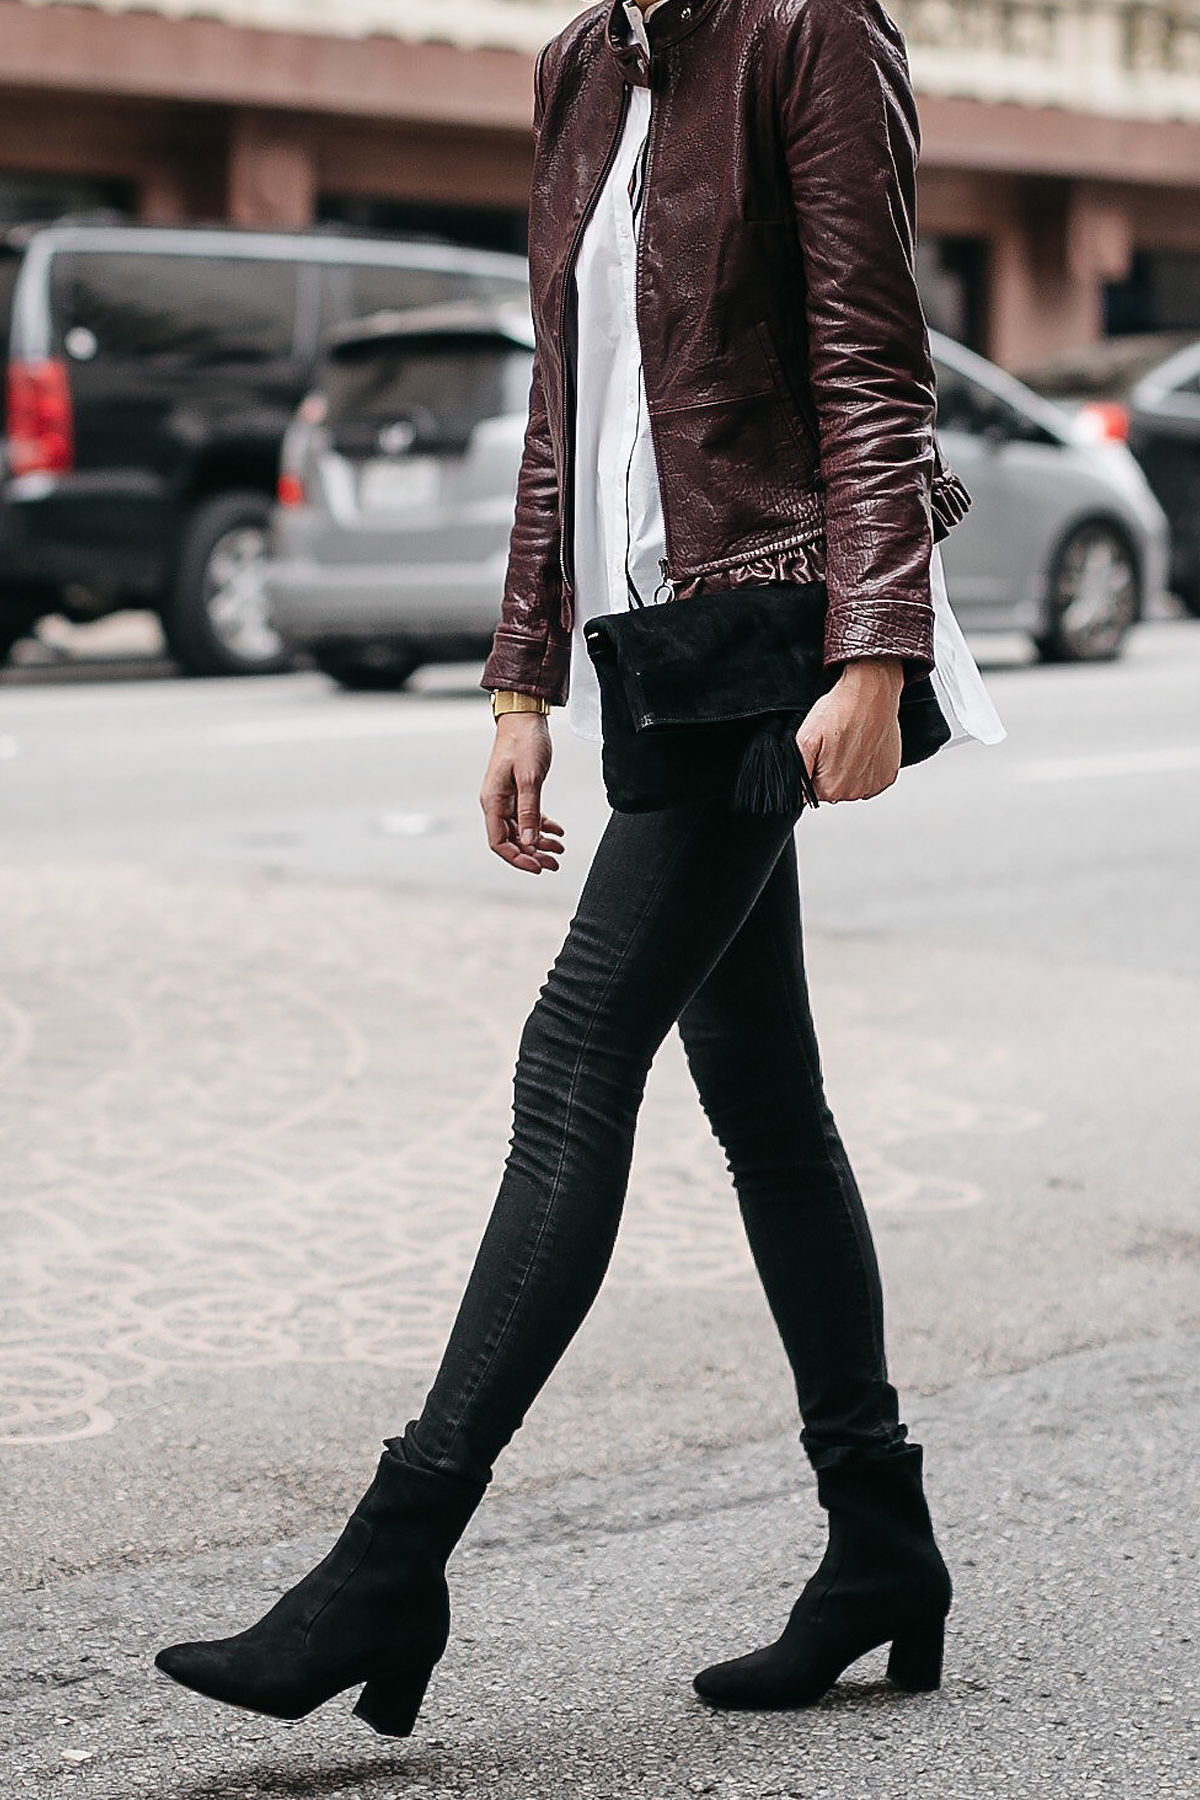 Ann Taylor Luxewear Moto Leather Jacket White Shirt Black Skinny Jeans Black Ankle Booties Black Clutch Fashion Jackson Dallas Blogger Fashion Blogger Street Style